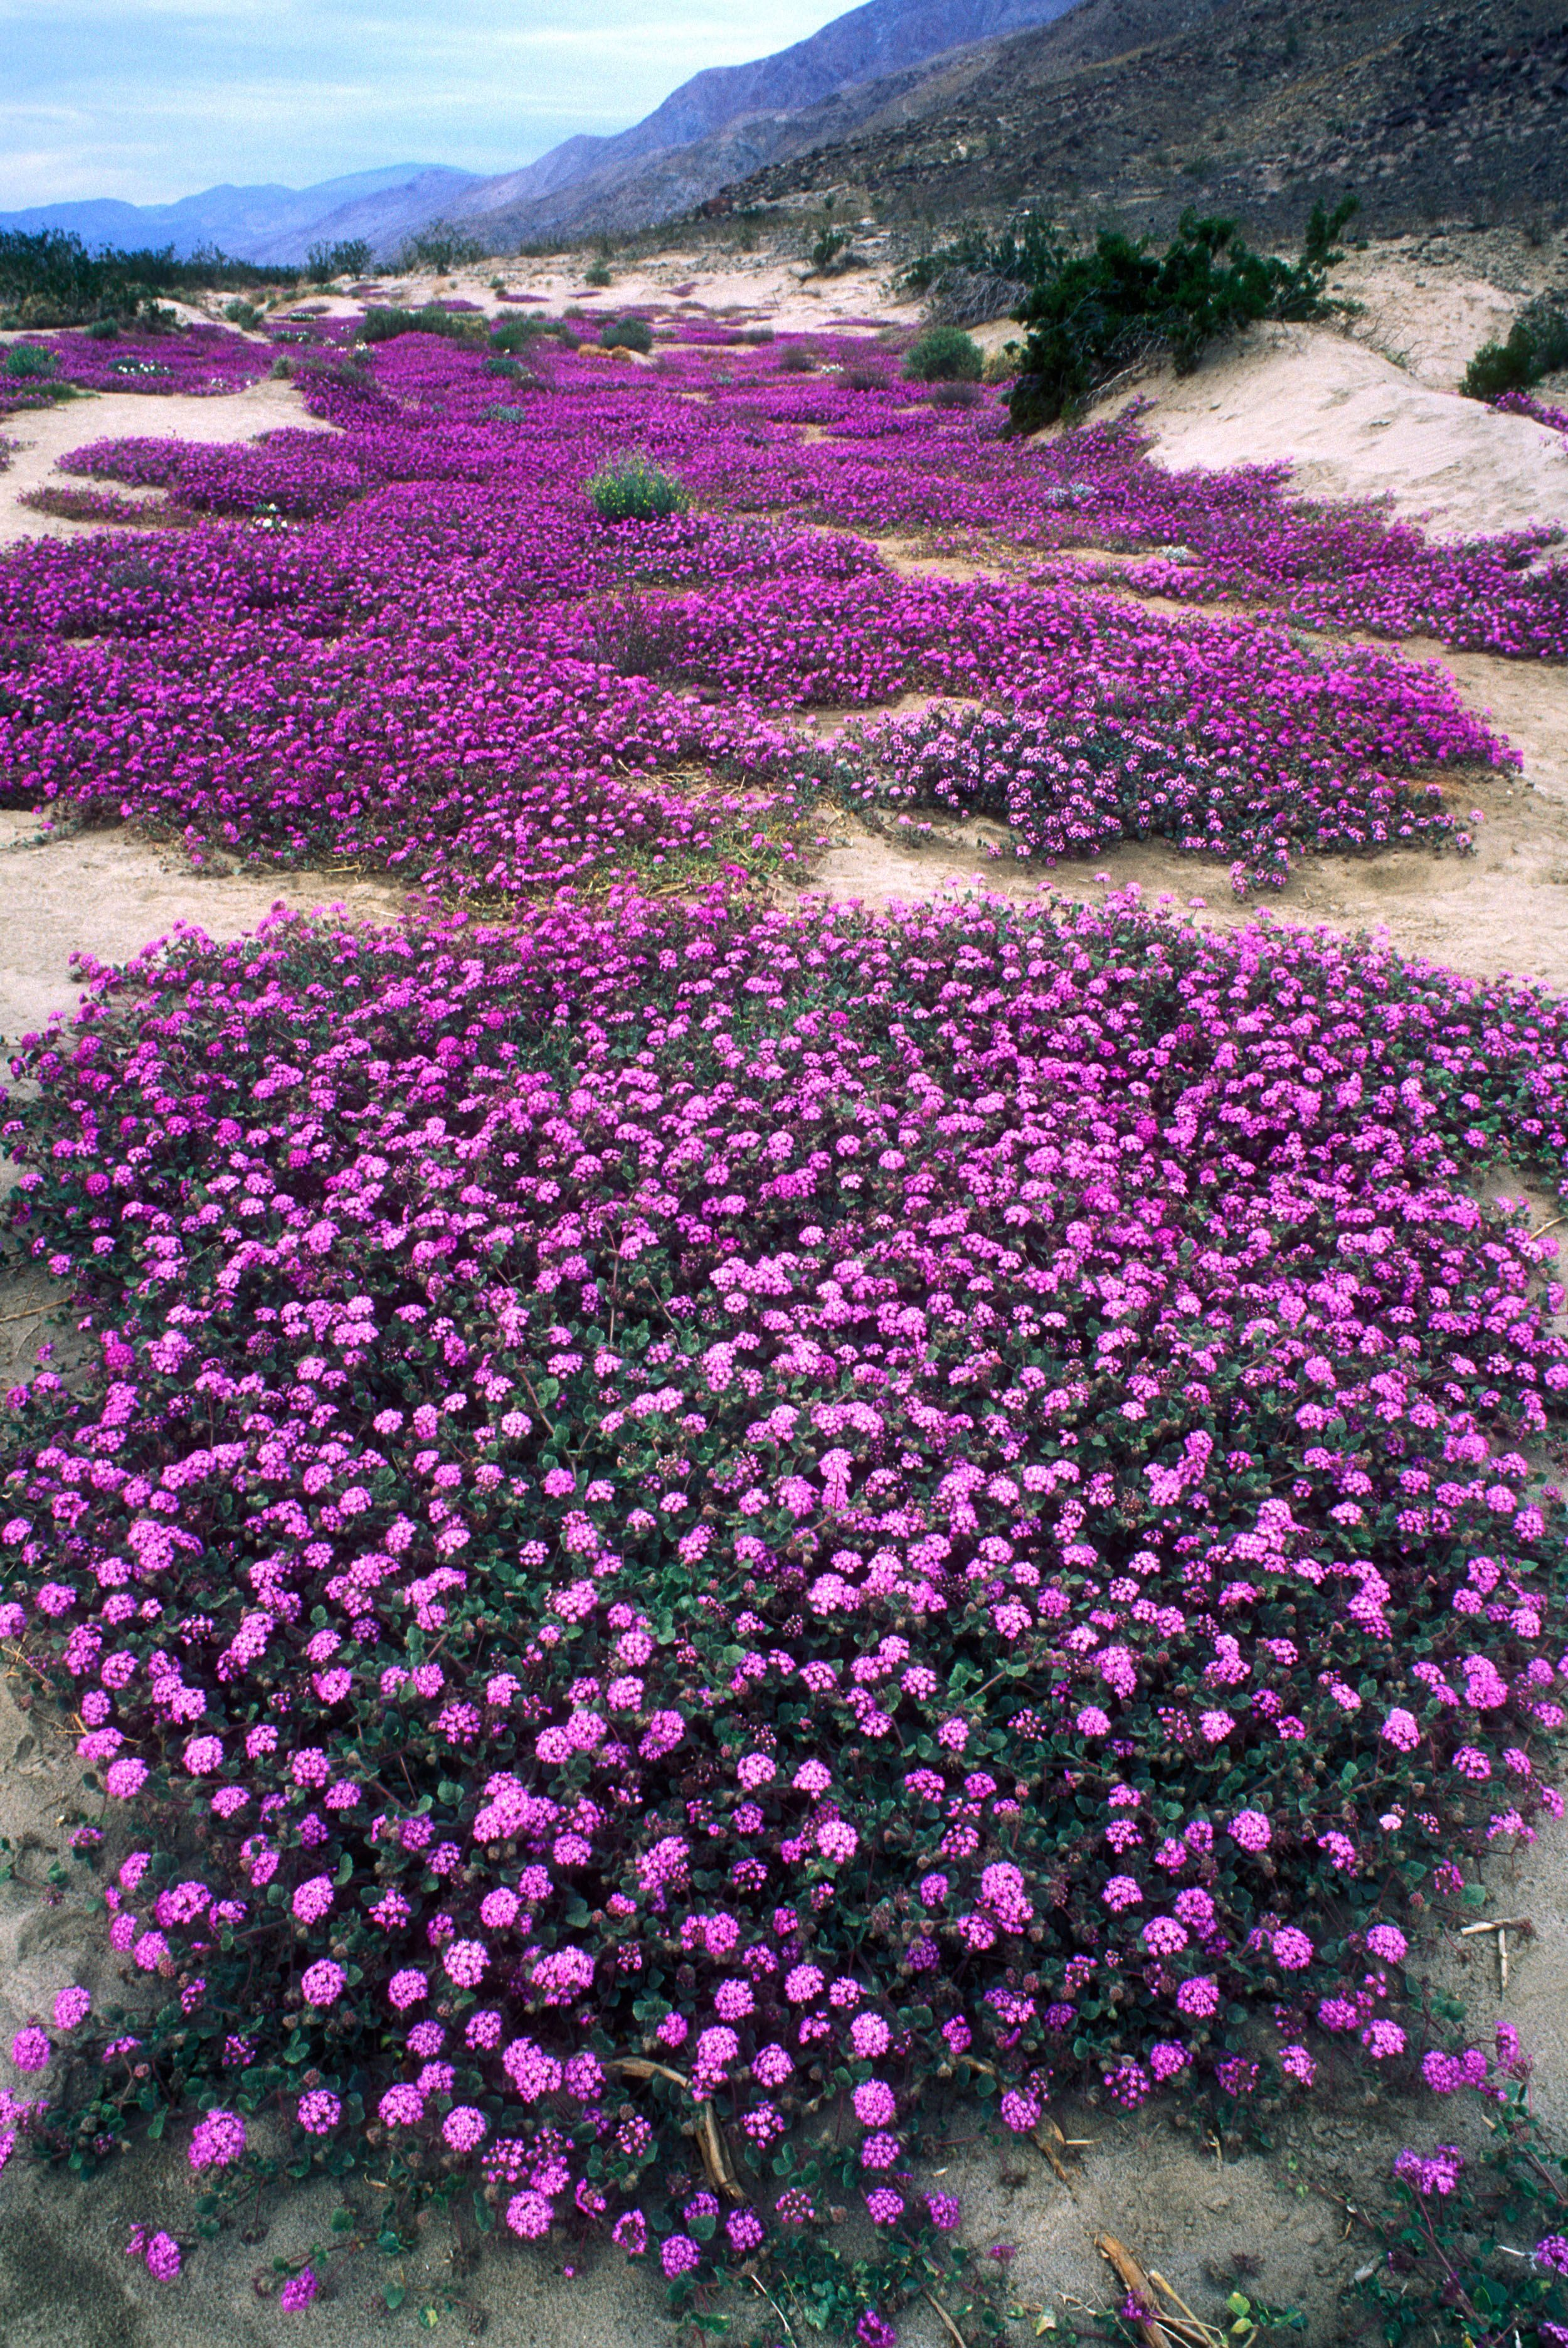 Where to go this weekend borrego springs ca borrego springs where to go this weekend borrego springs ca sand verbenas in bloom at anza borrego desert state park photo by george ostertagage fotostockalamy mightylinksfo